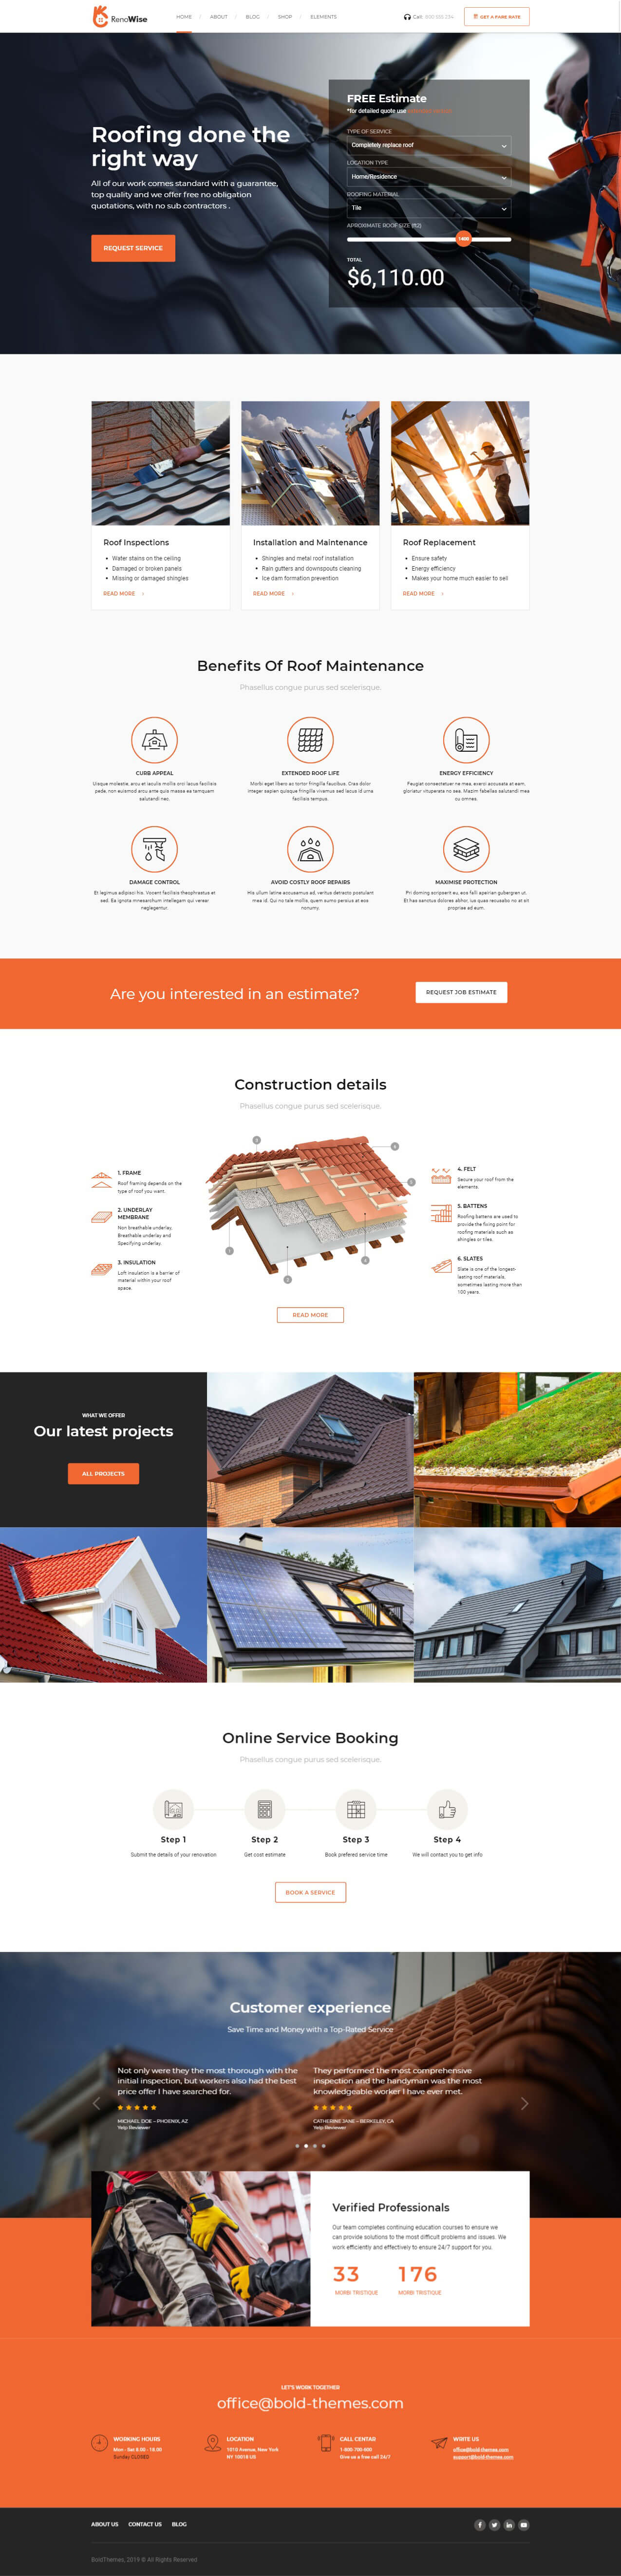 https://renowise.bold-themes.com/wp-content/uploads/2019/05/Roofing.jpg